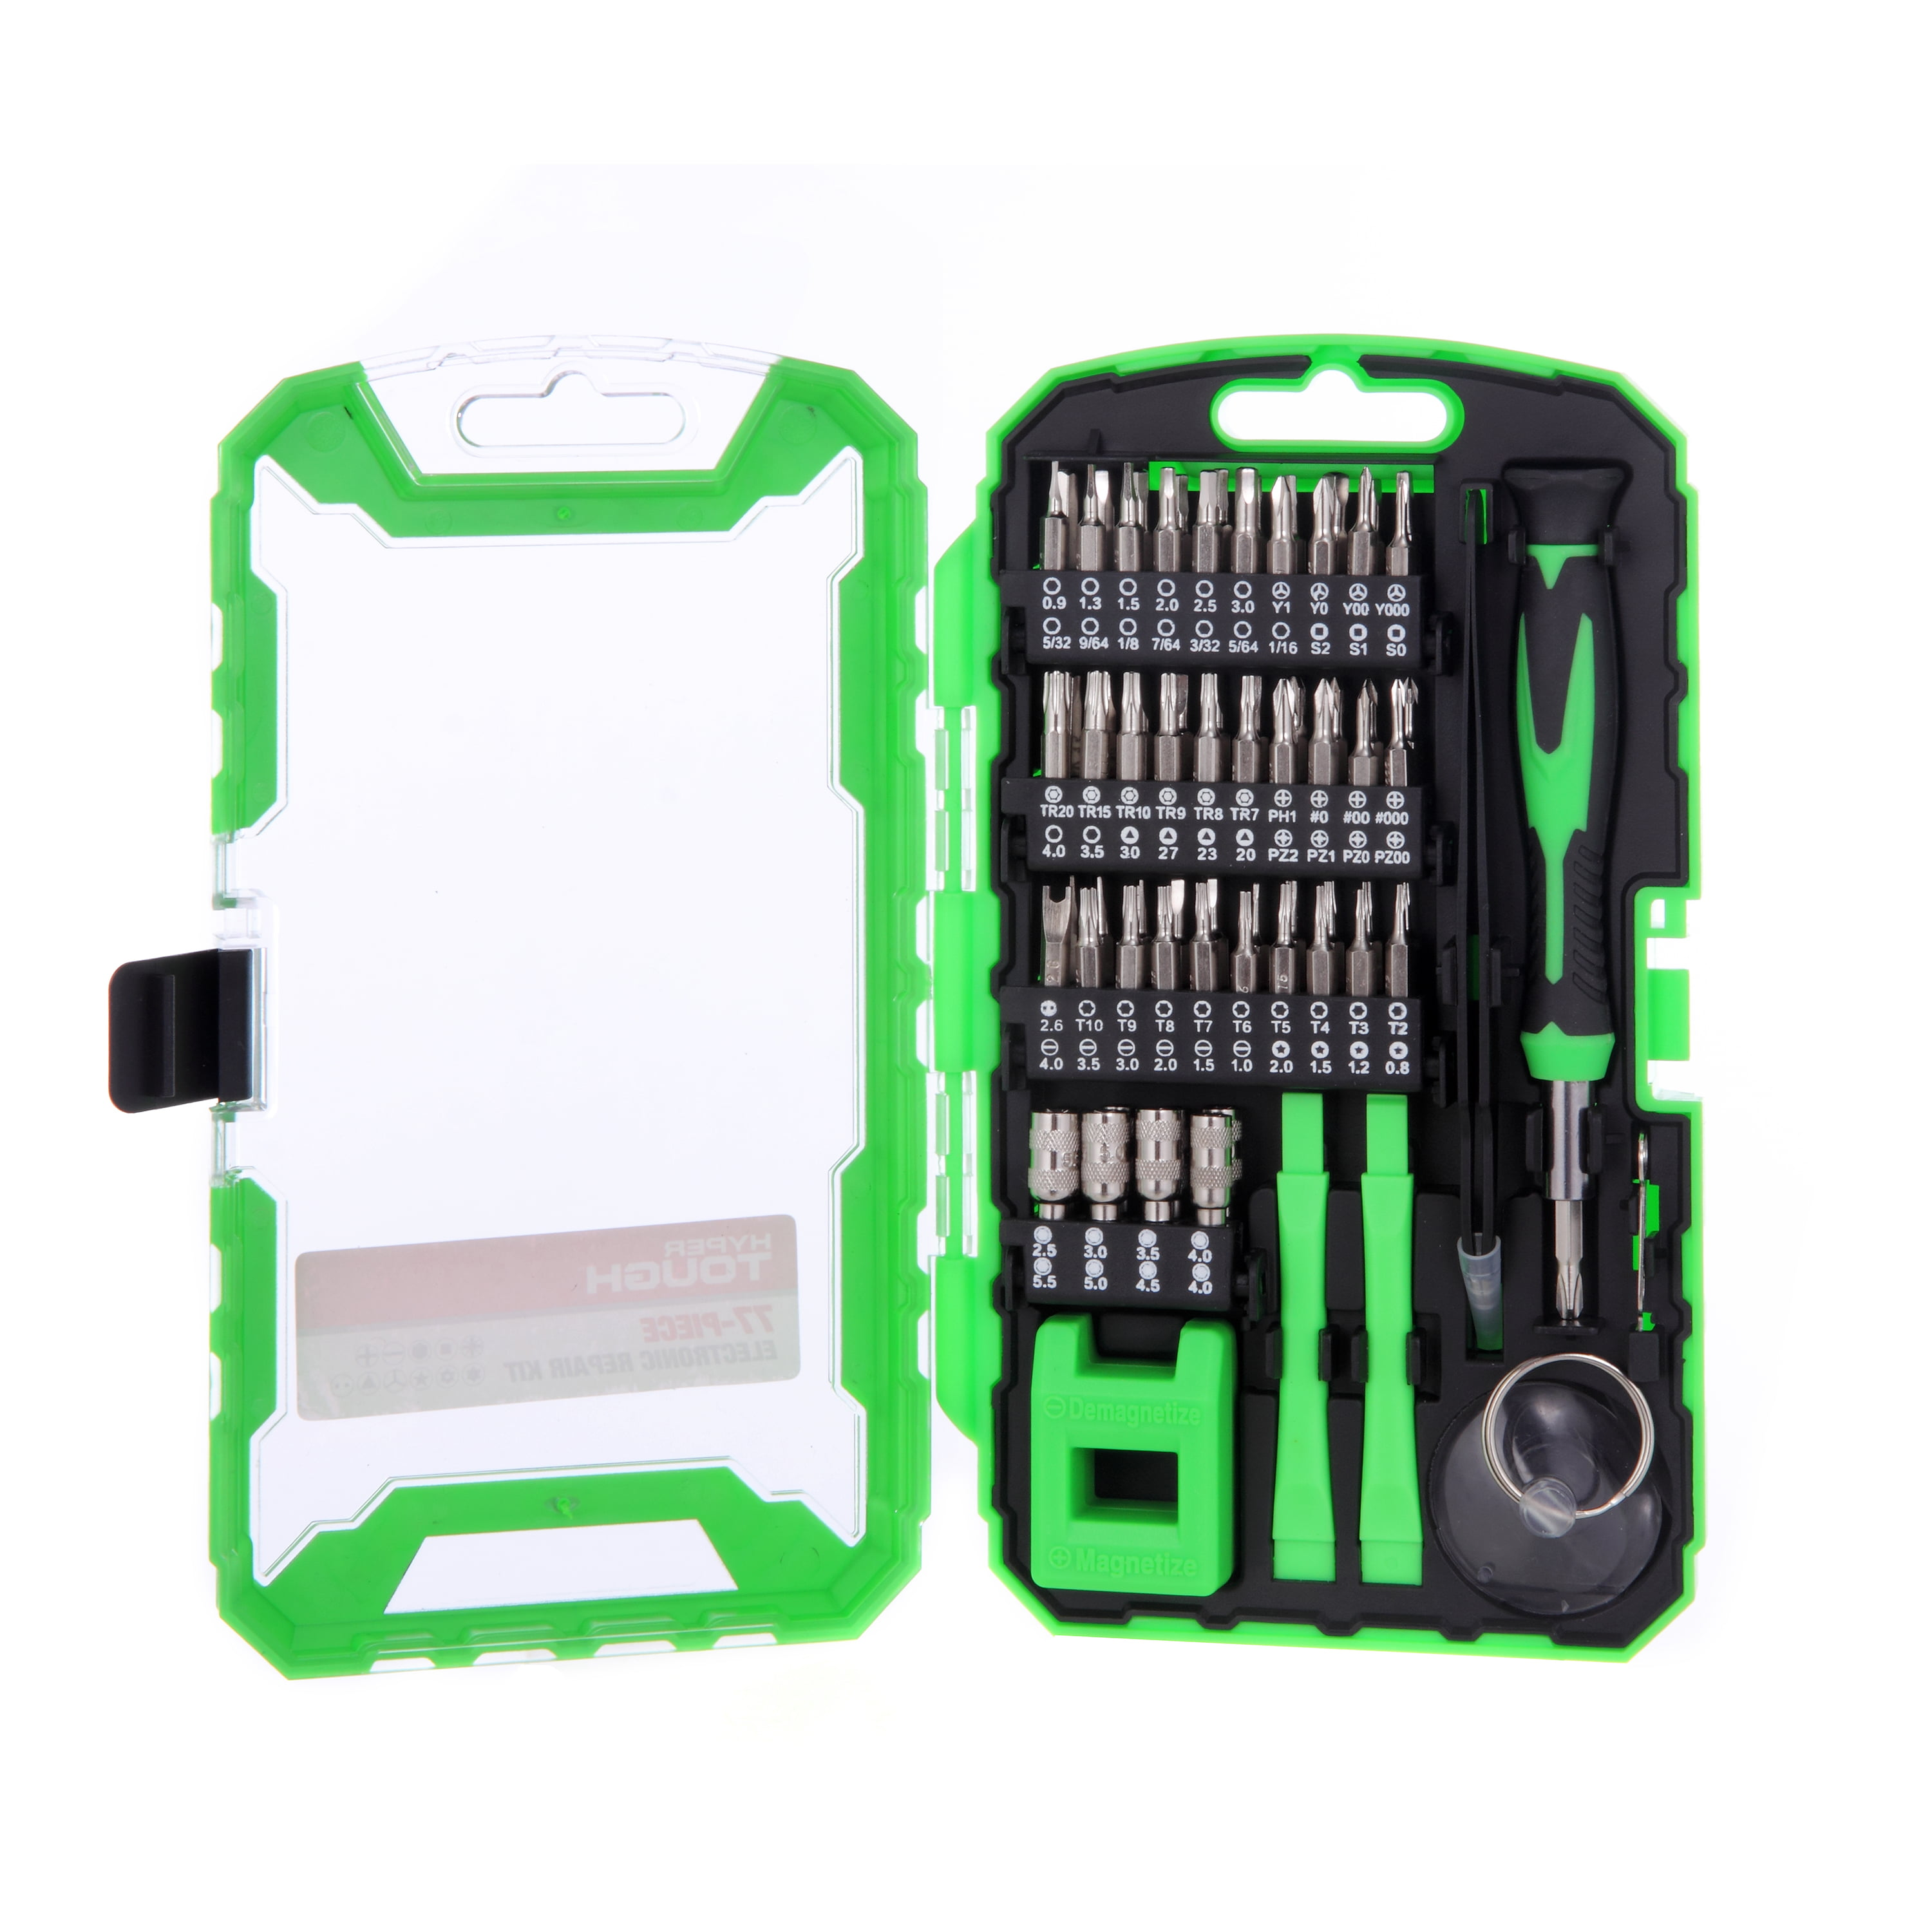 Hyper Tough 77 Piece Computer Repair Kit with Storage Case TS85134A